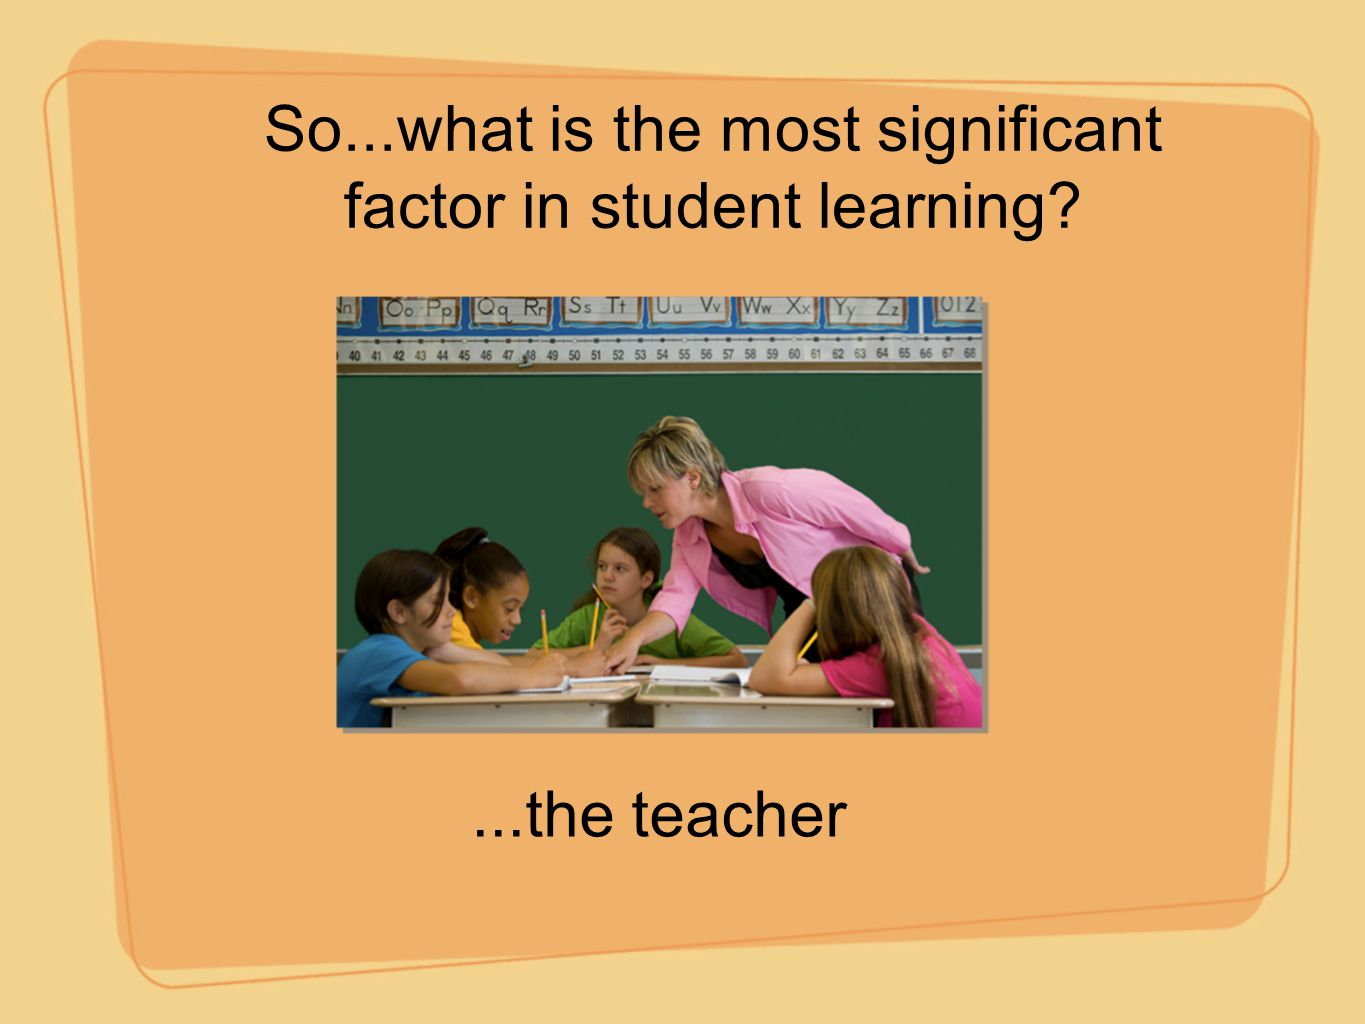 So...what is the most significant factor in student learning